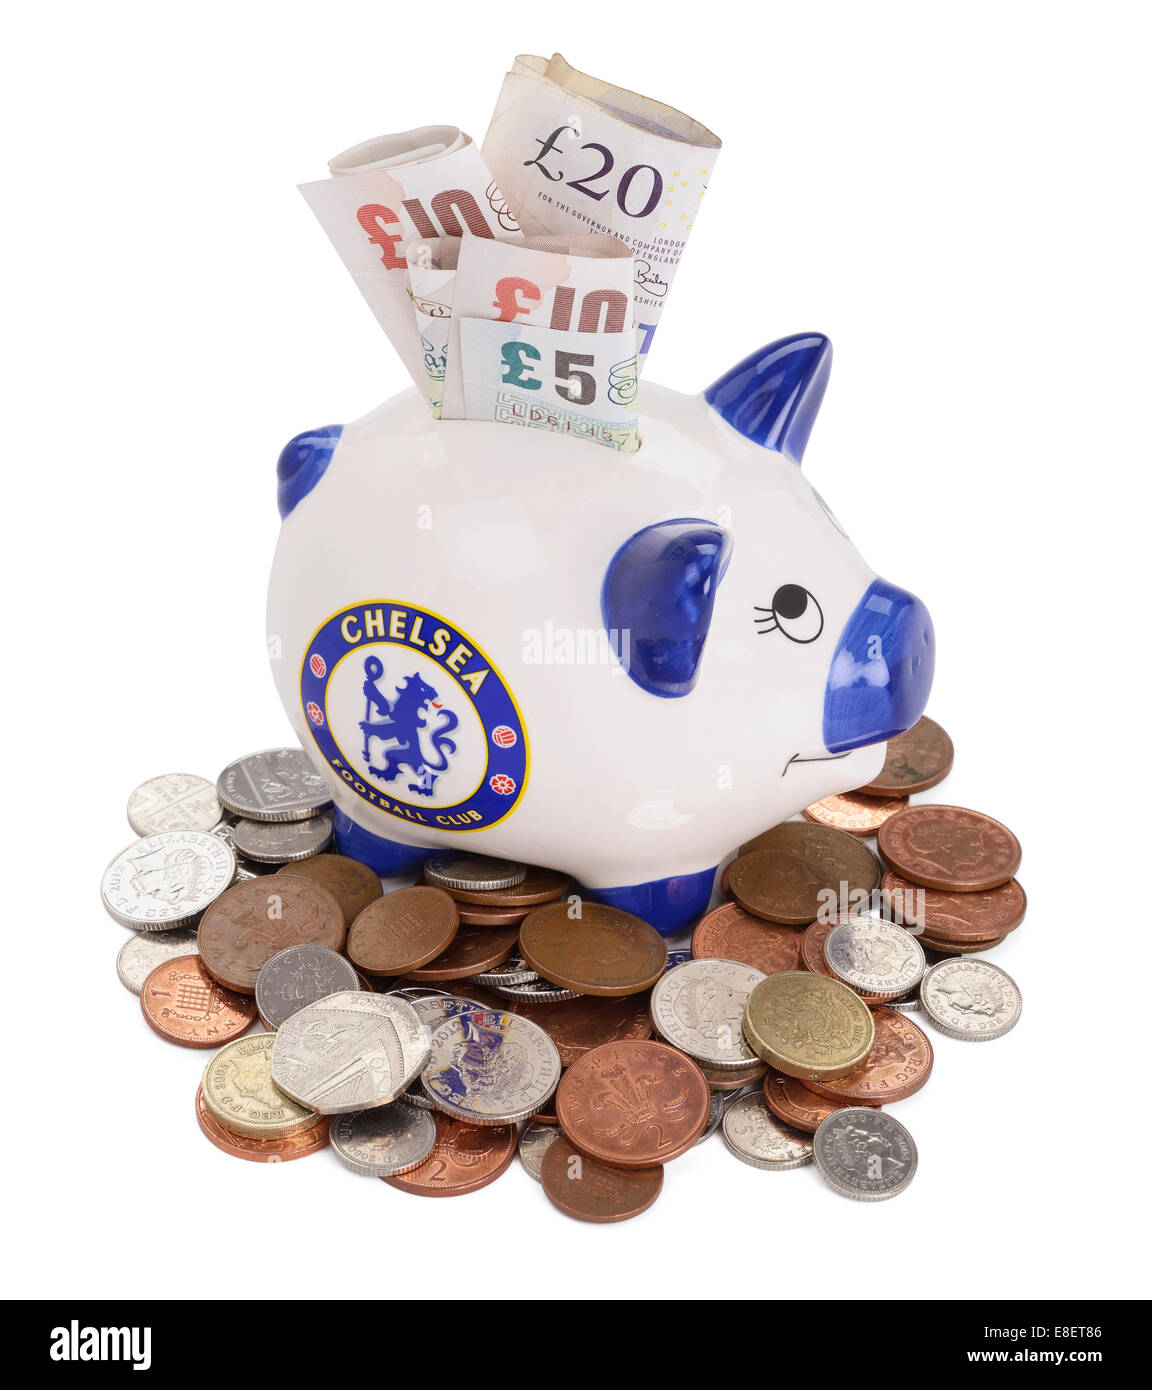 Chelsea Football Club piggy bank - Stock Image